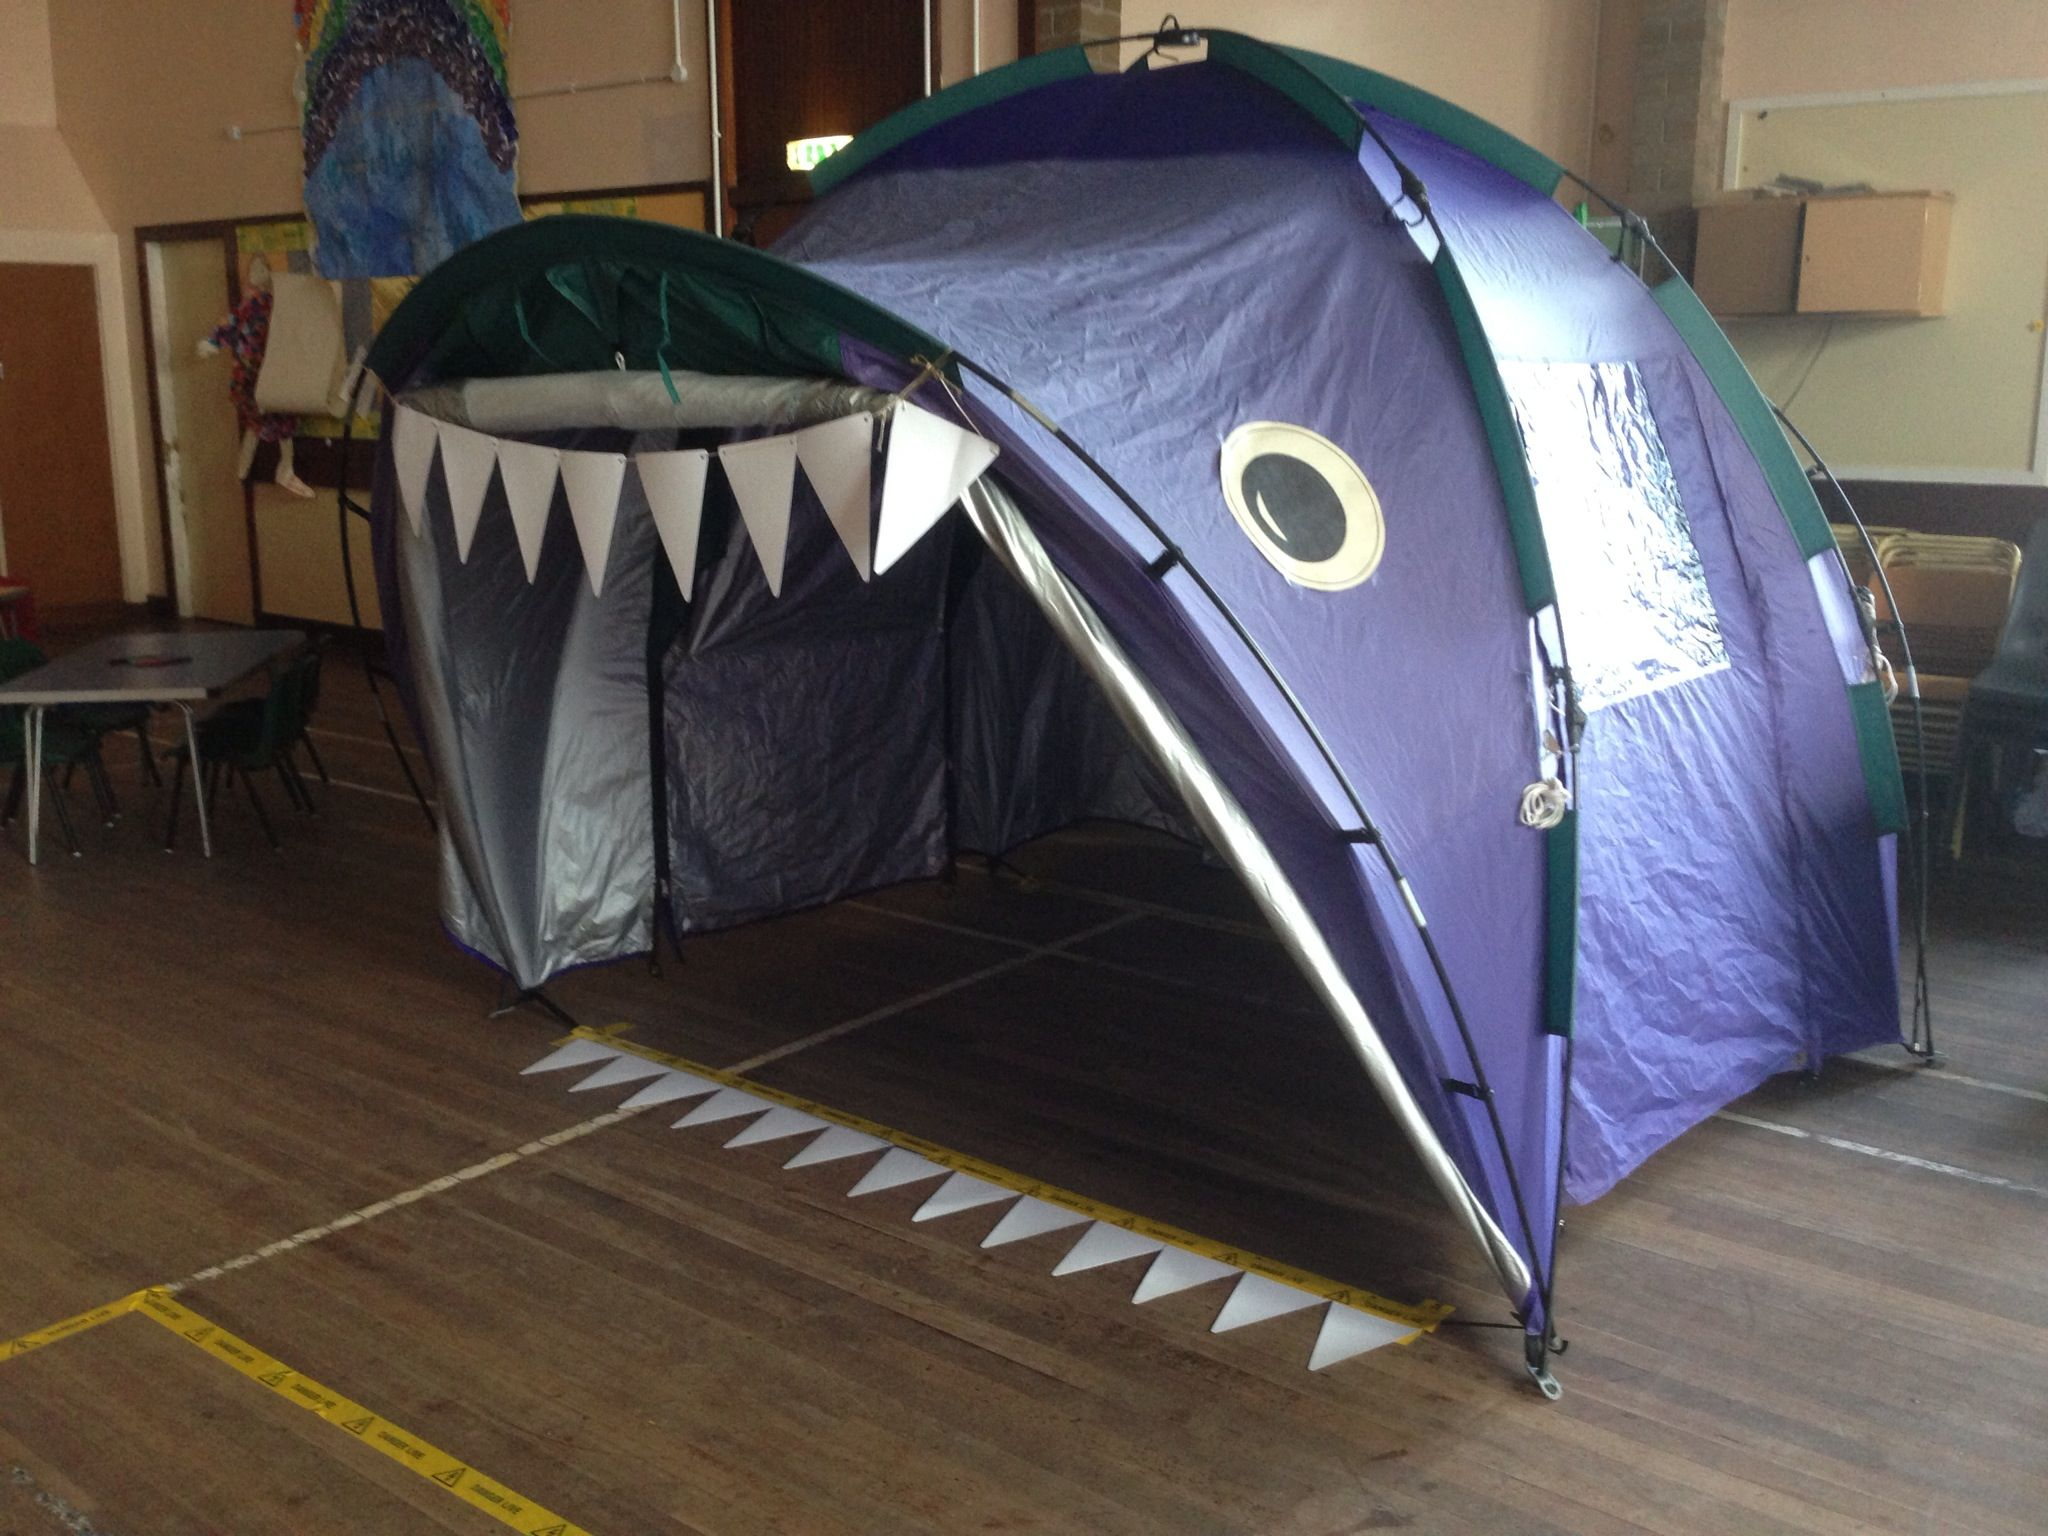 The Tent Becomes A Big Fish For Telling The Story Of Jonah